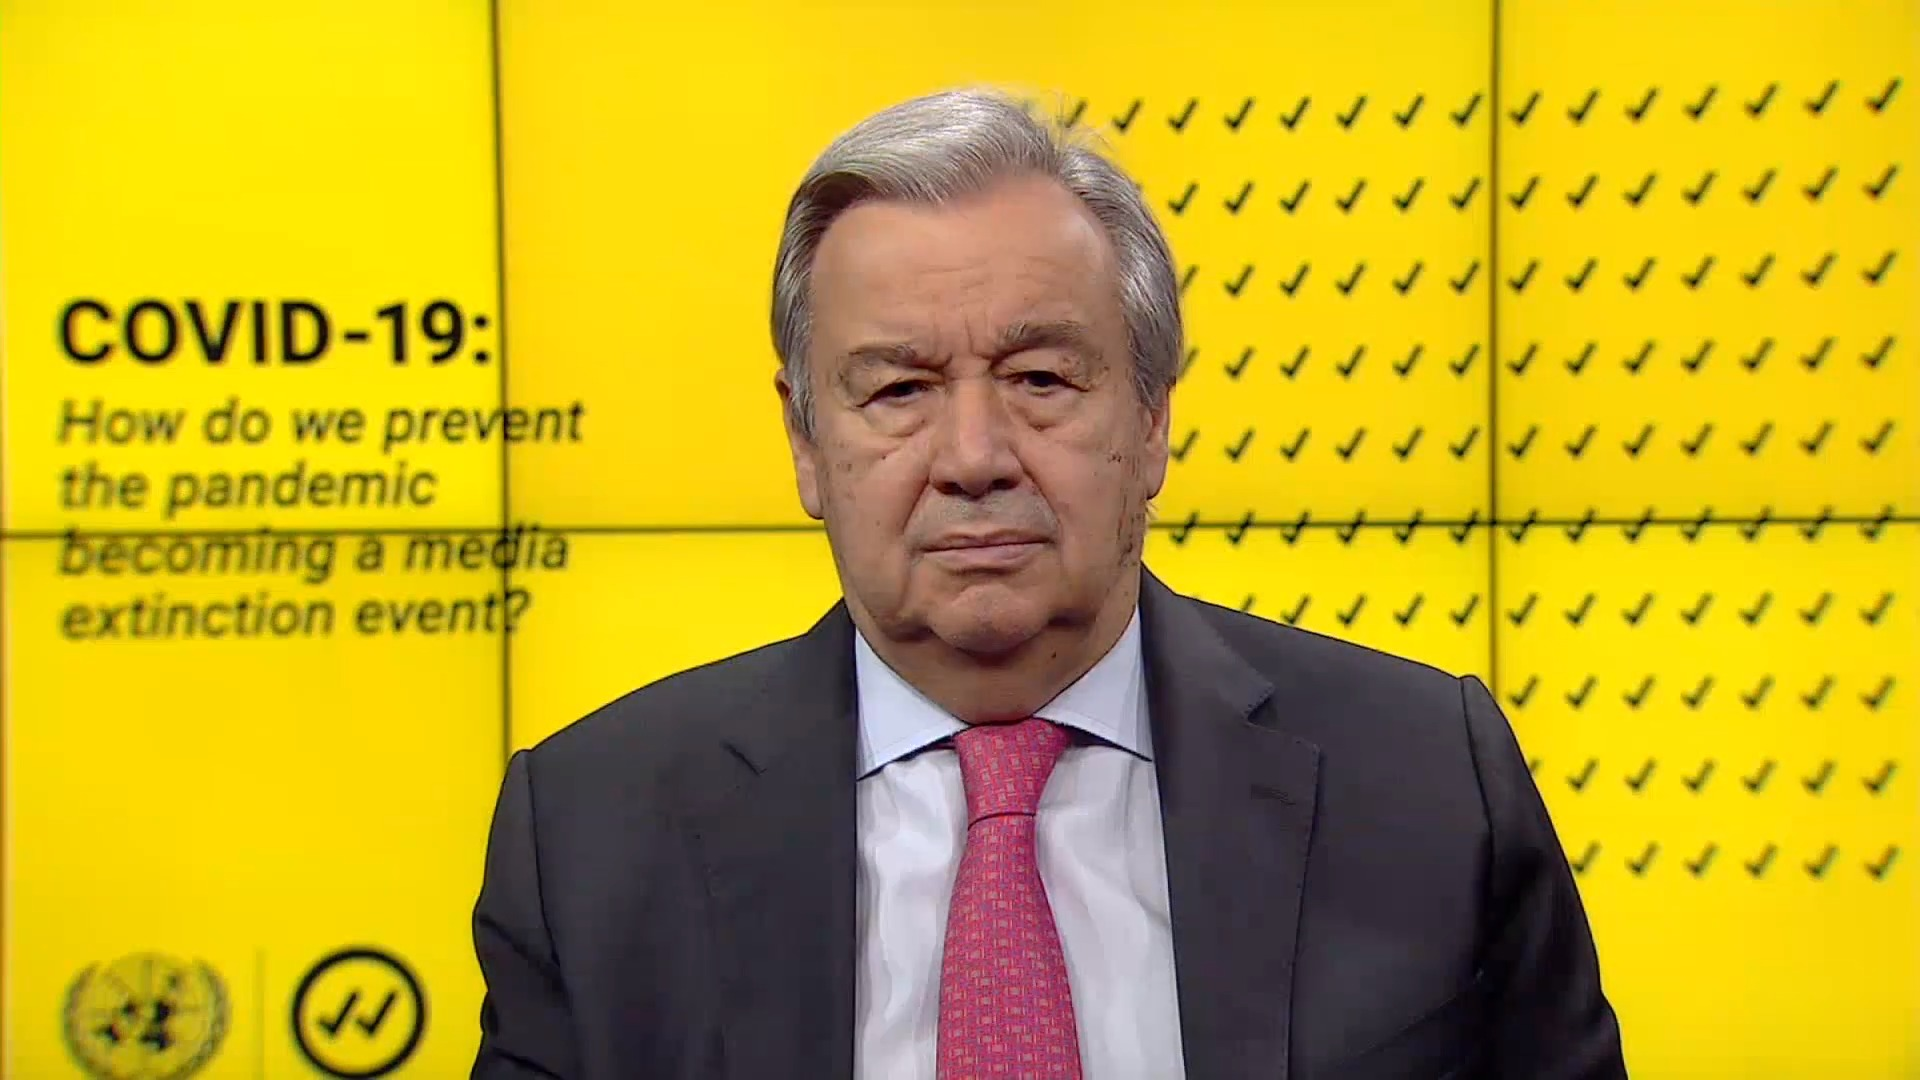 Pandemic cannot become a 'media extinction event': UN Secretary-General